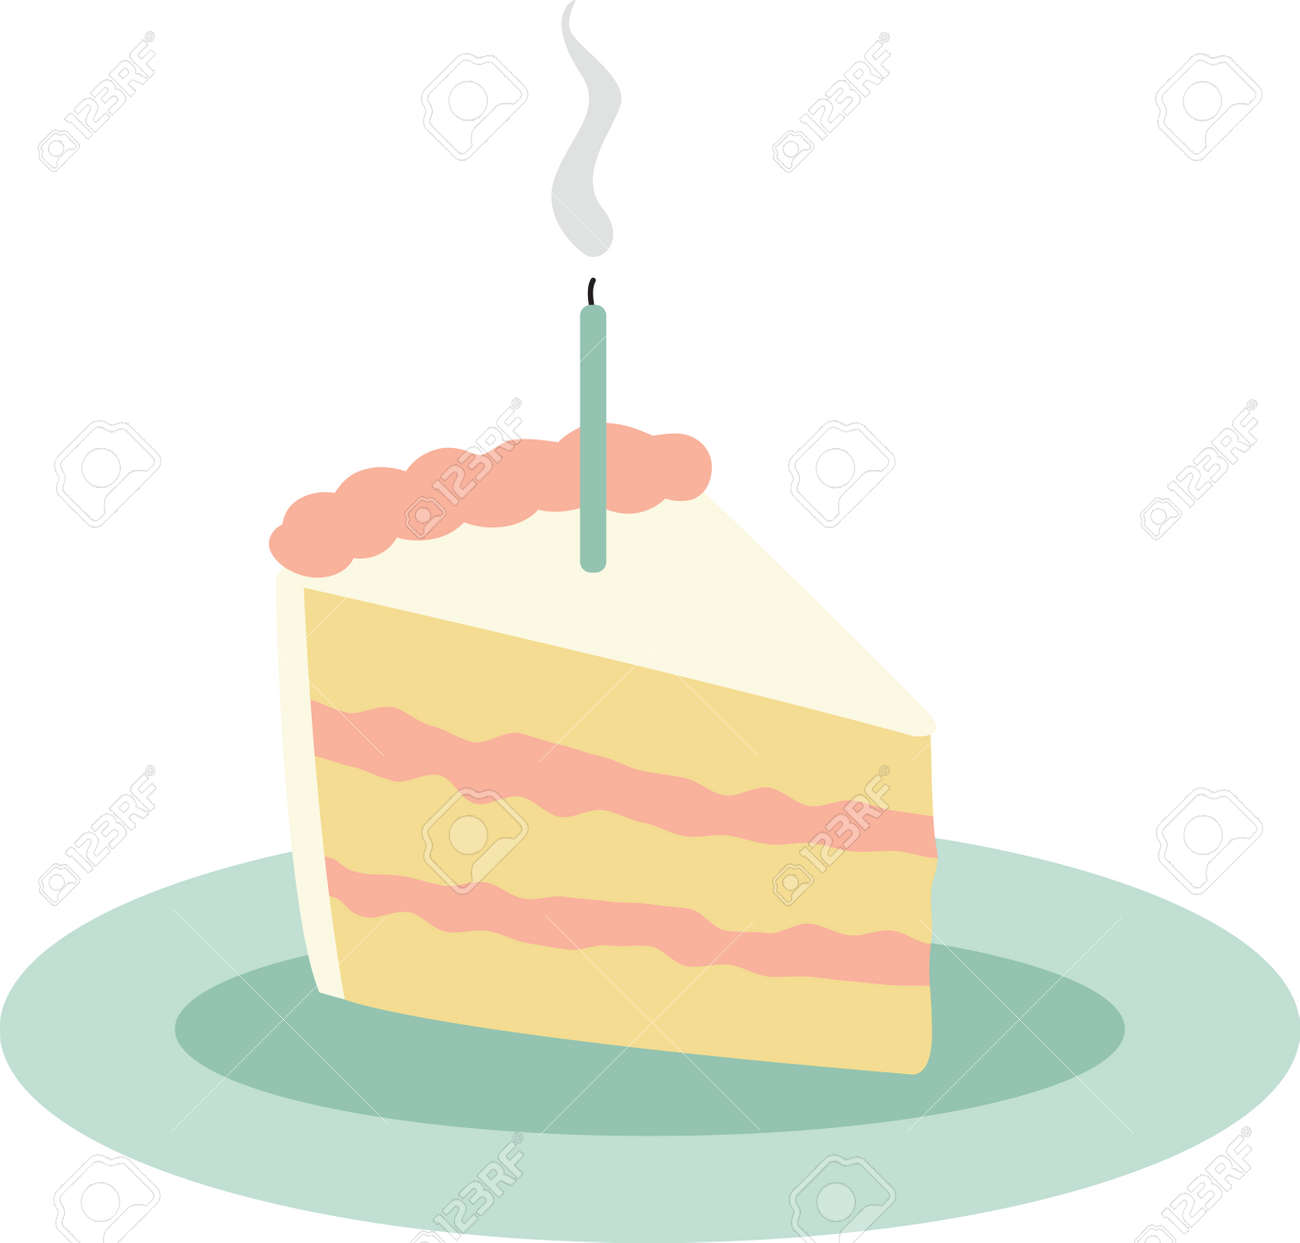 Use This Slice Of Cake For A One Year Olds Birthday Shirt Stock Vector